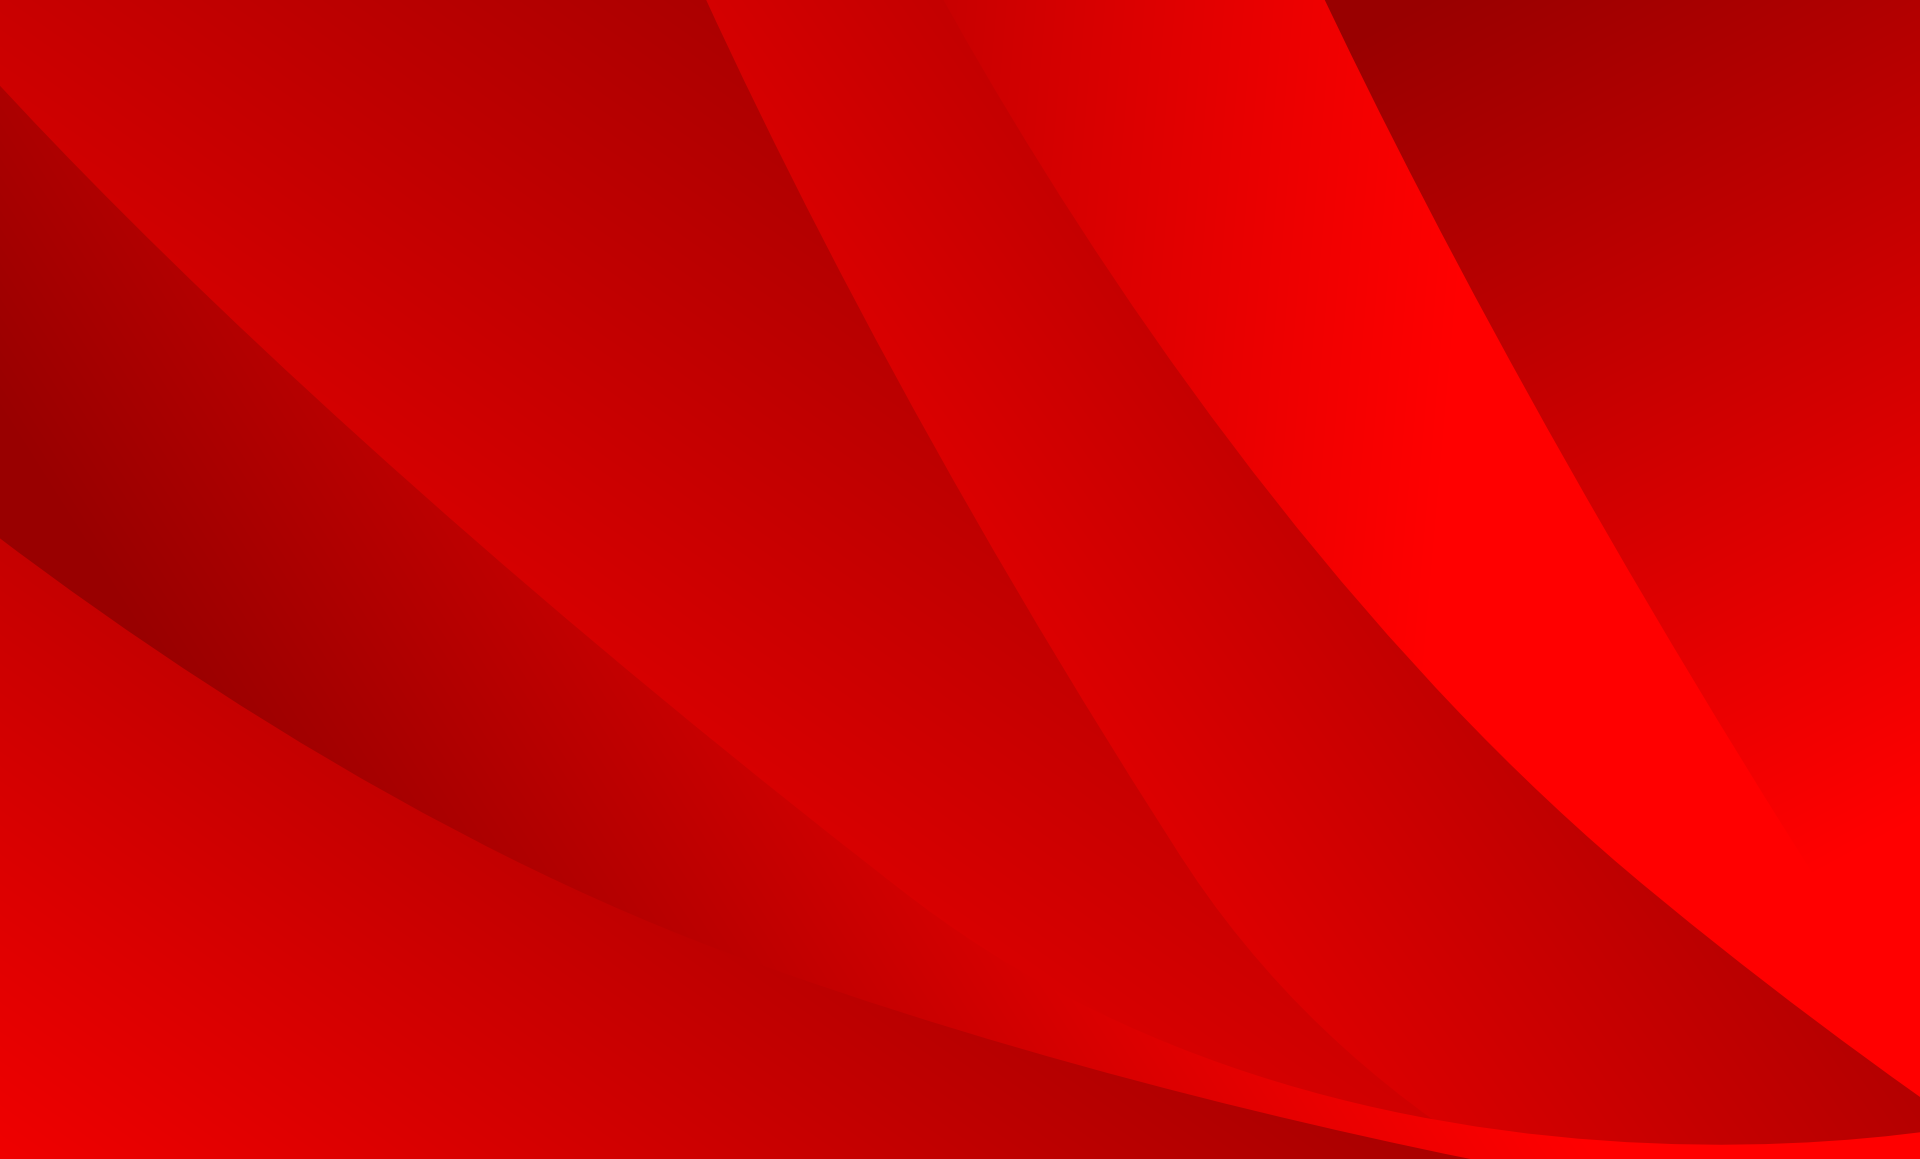 background with red waves free image